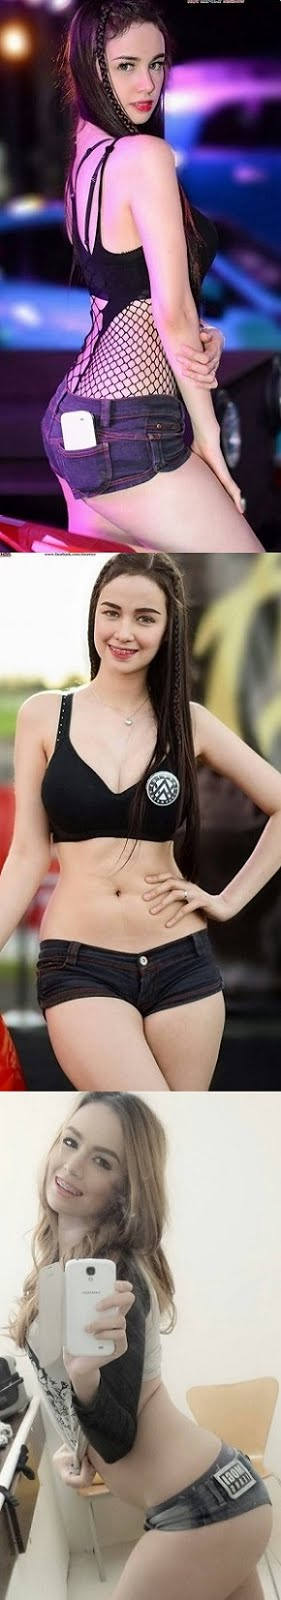 KIM  DOMINGO  Photos 2!